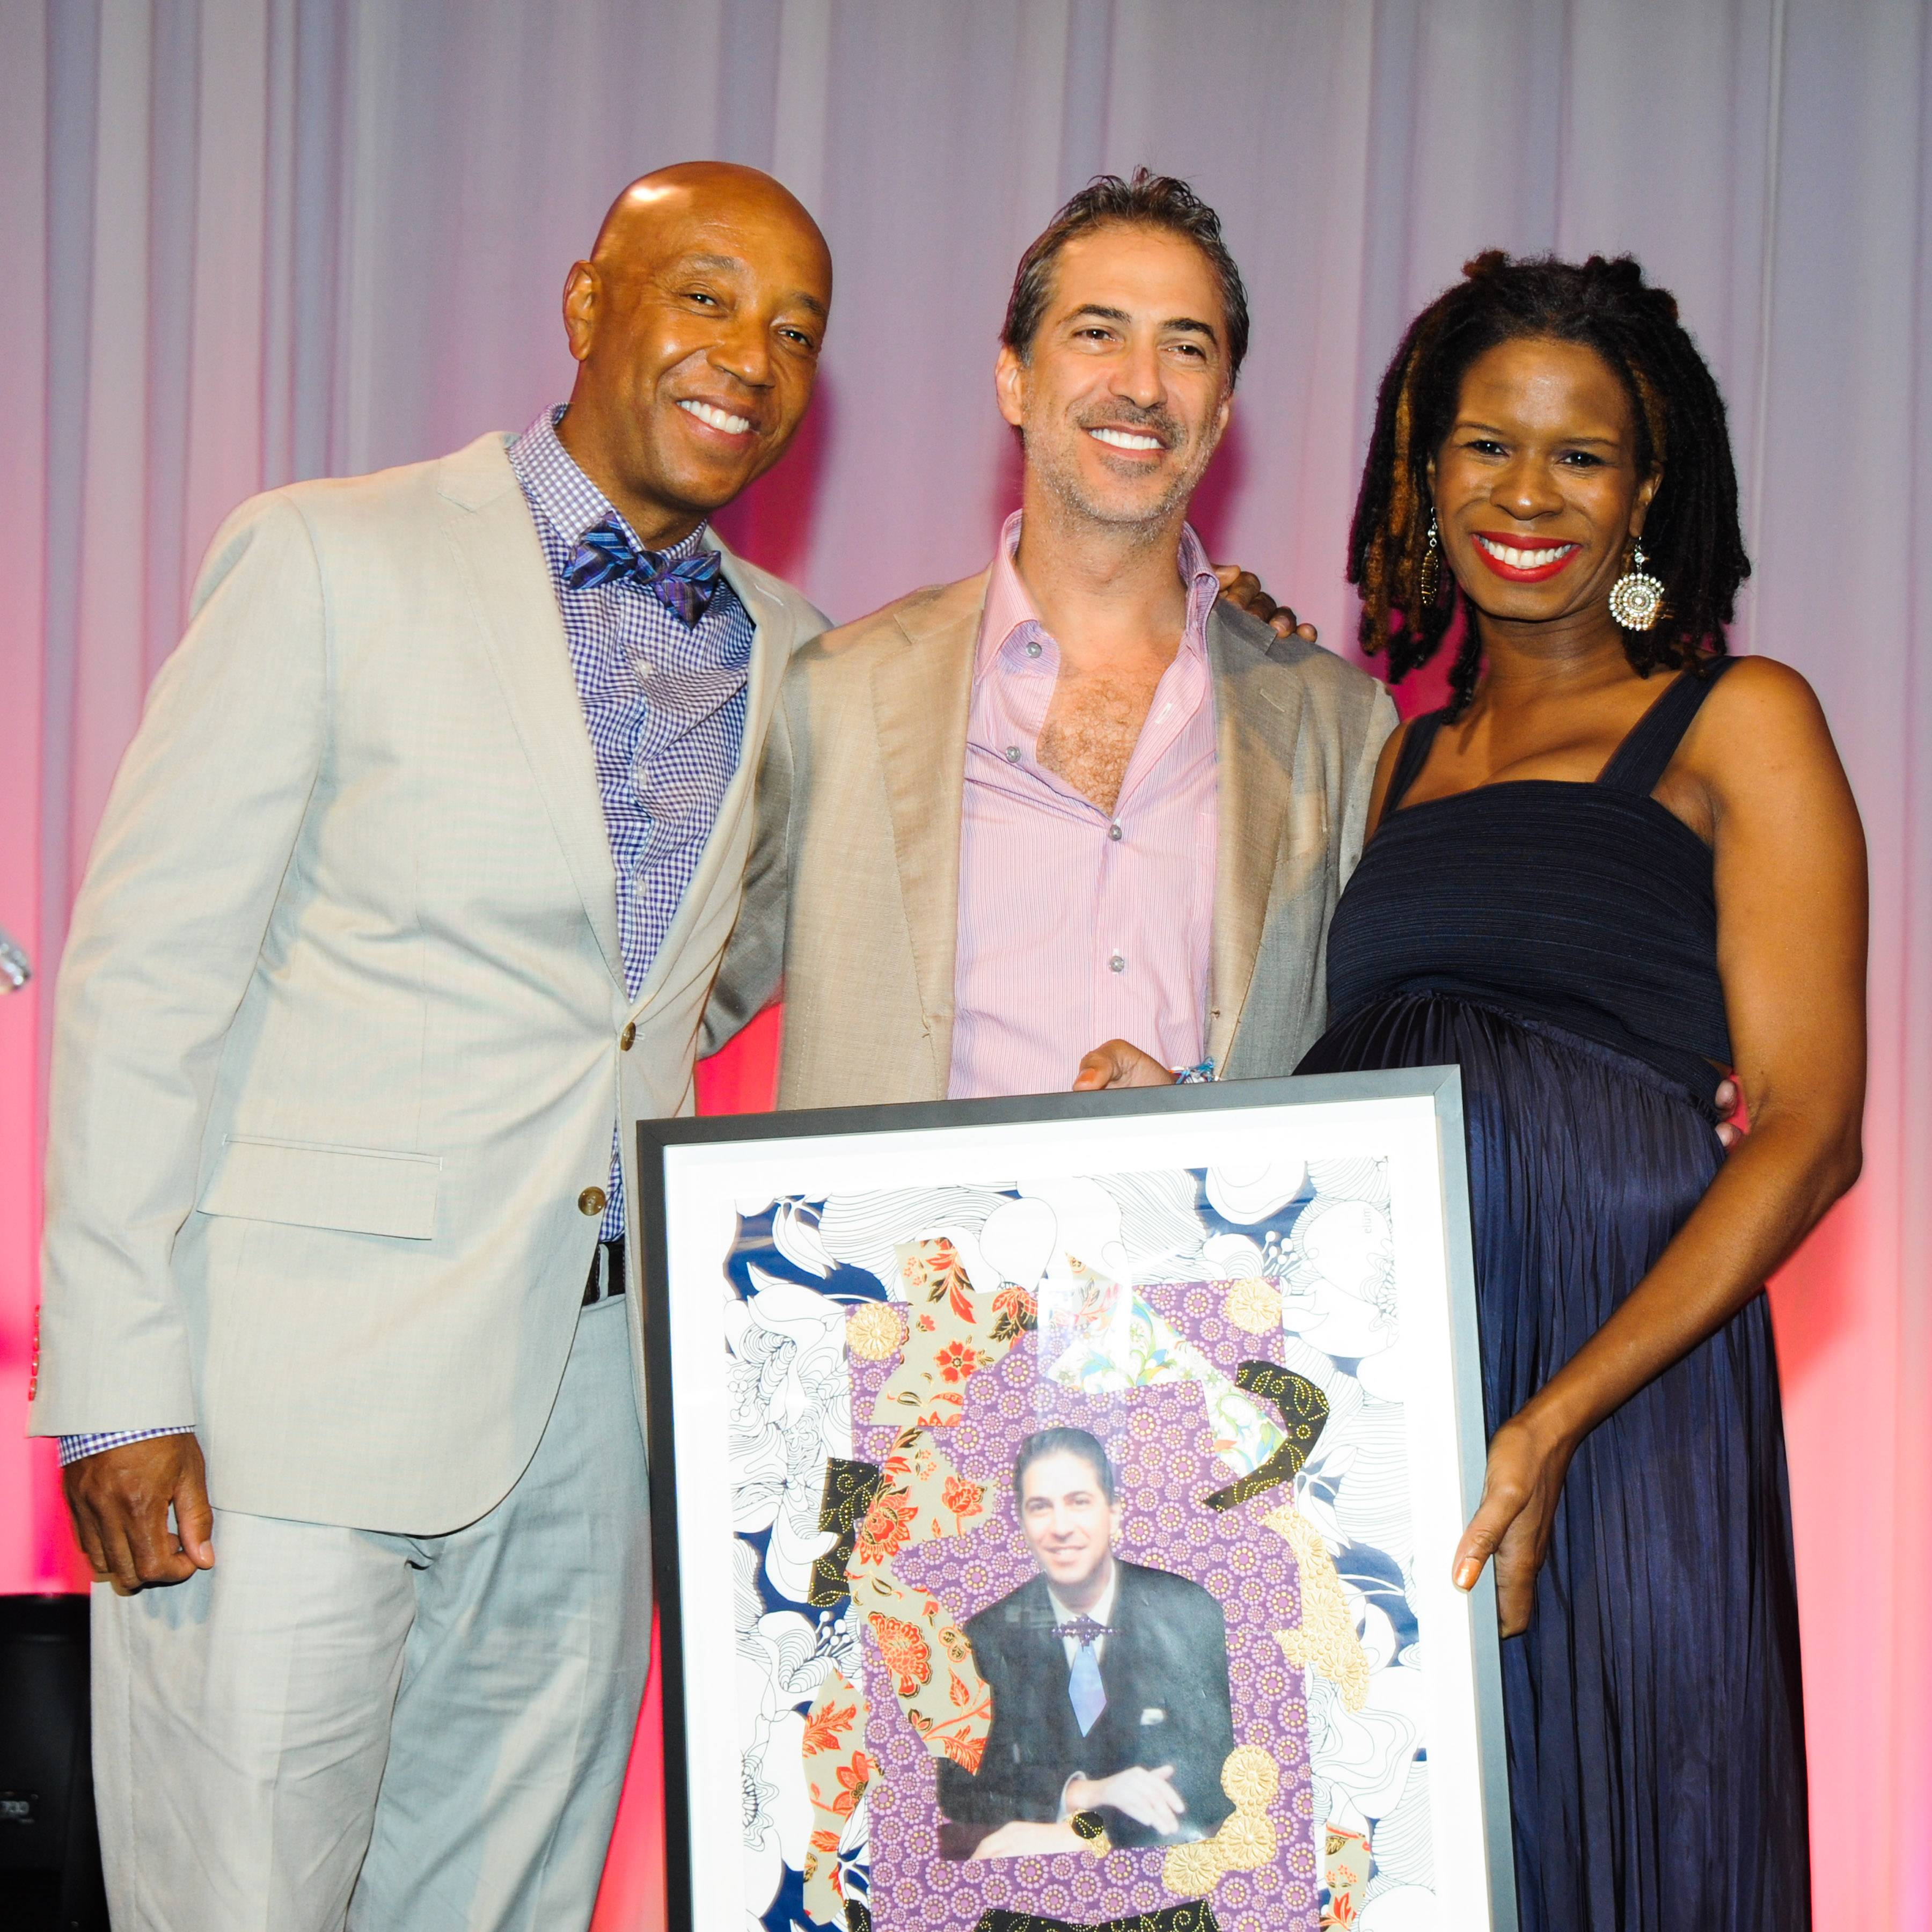 Marc Leder, Tangie Murray, and Russell Simmons Accepting Award